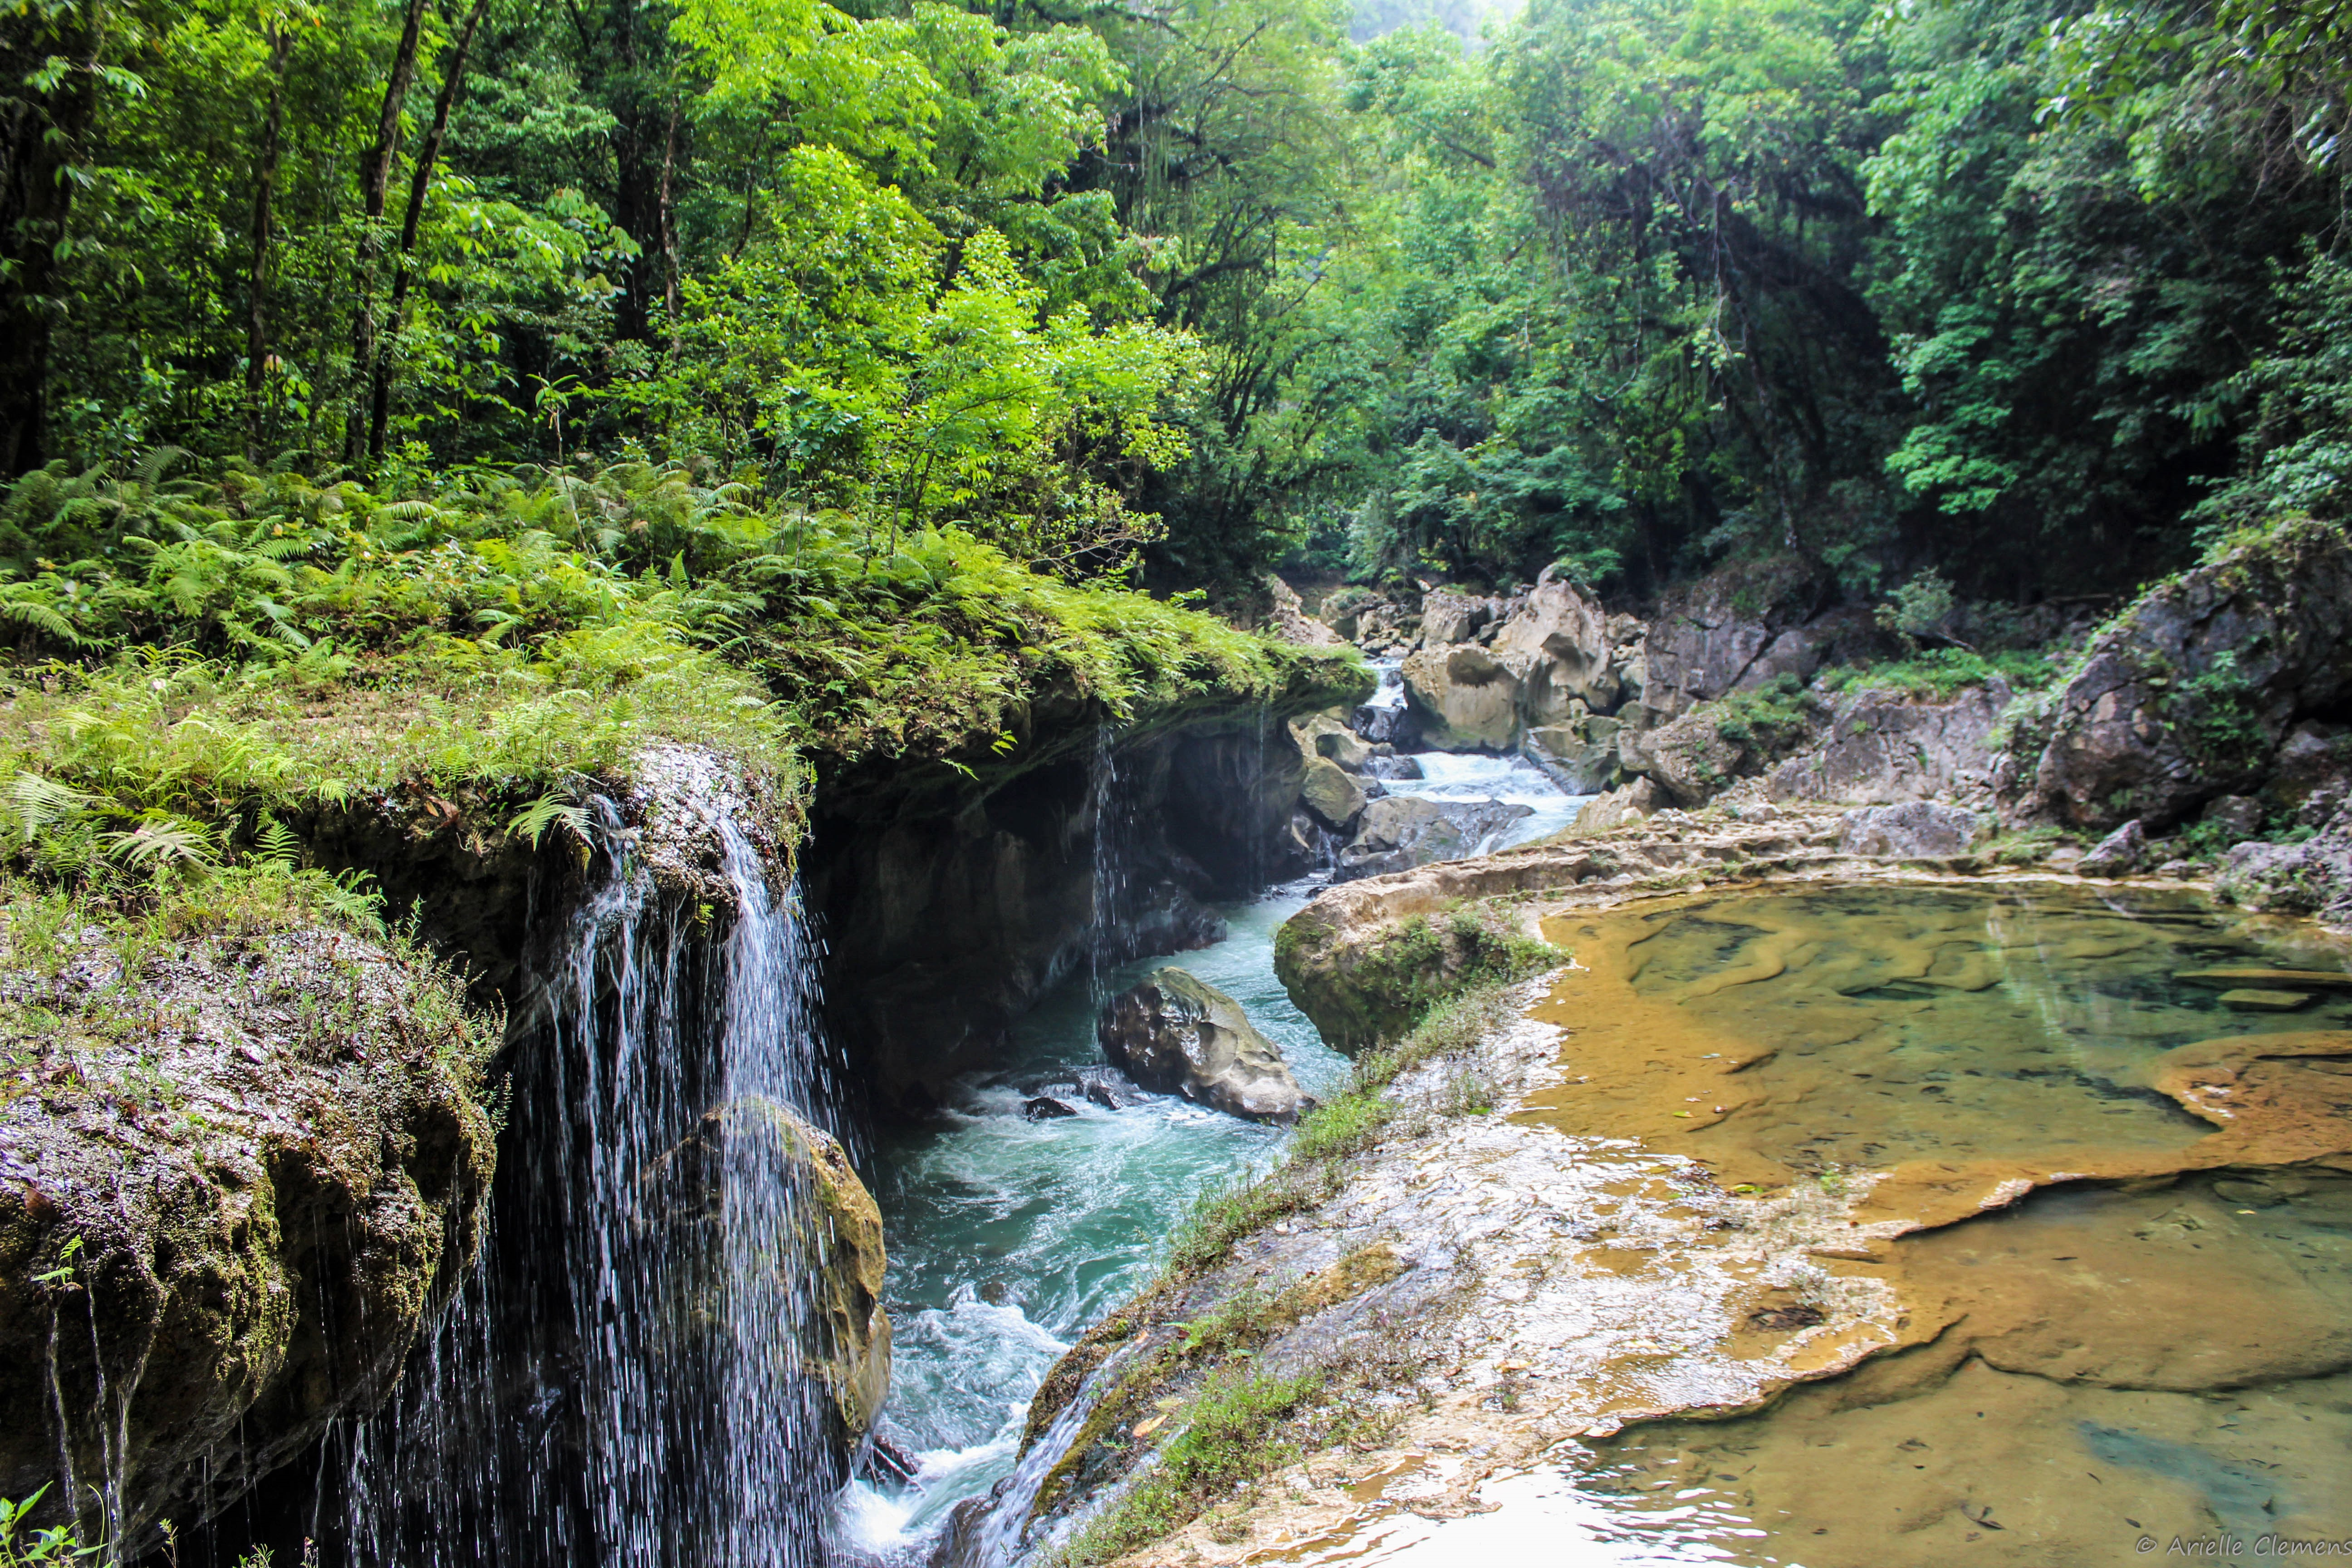 Semuc Champey by Arielle Clemens - Cities and Landscapes Finalist